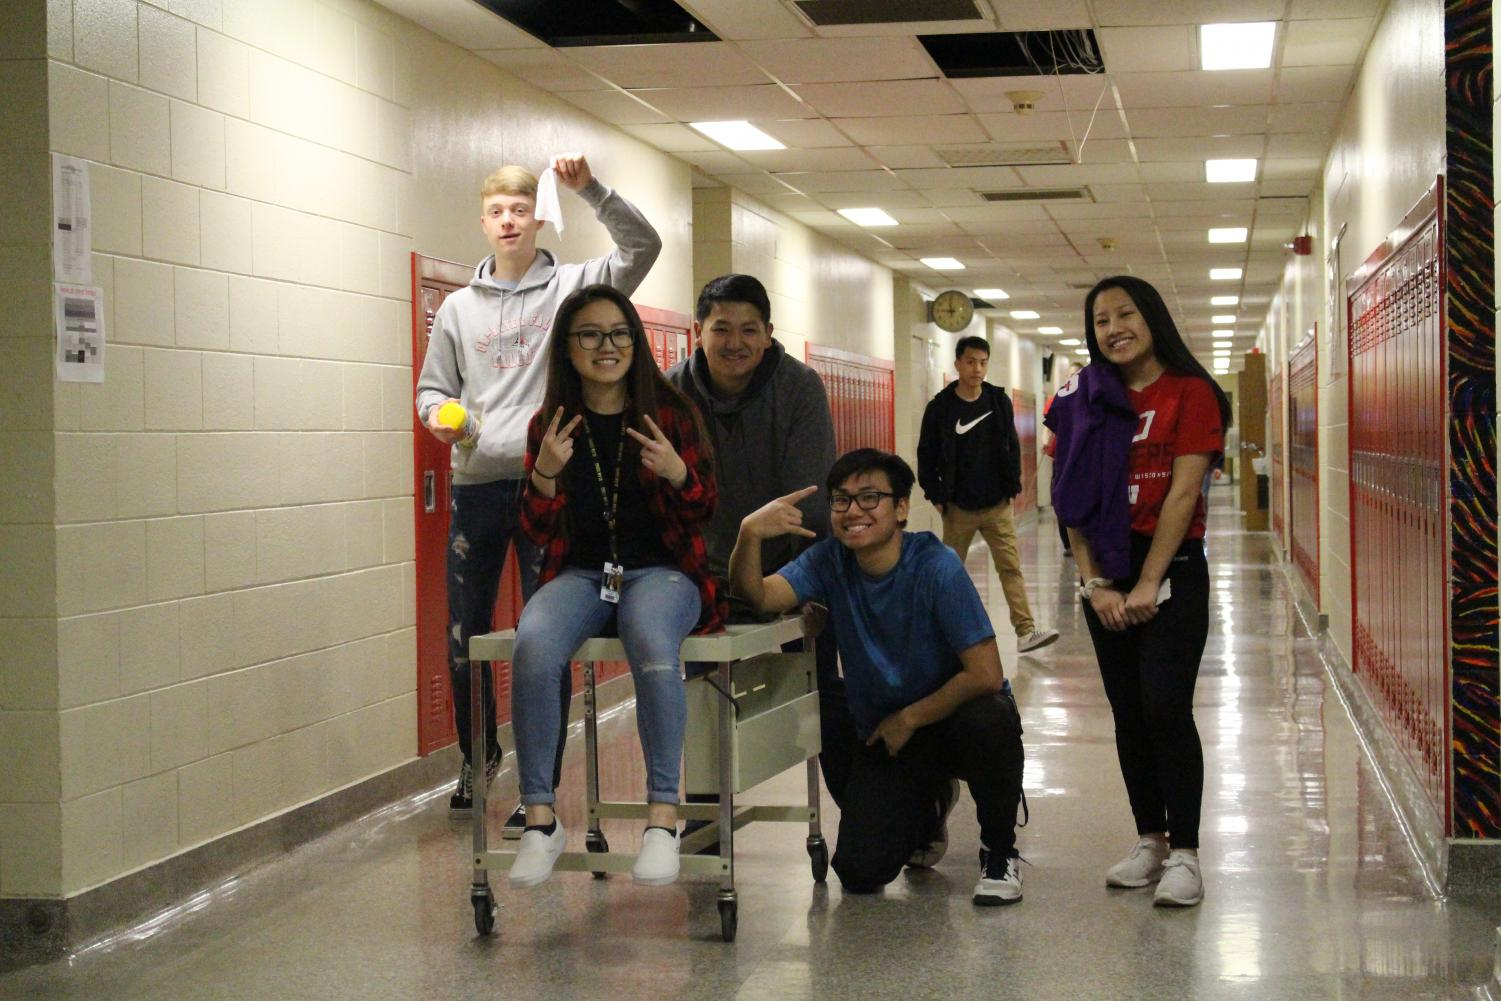 A+group+of+students+stop+in+the+hallway+for+a+picture.+Luckily+none+of+the+damaged+ceiling+tiles+leaked+onto+them.